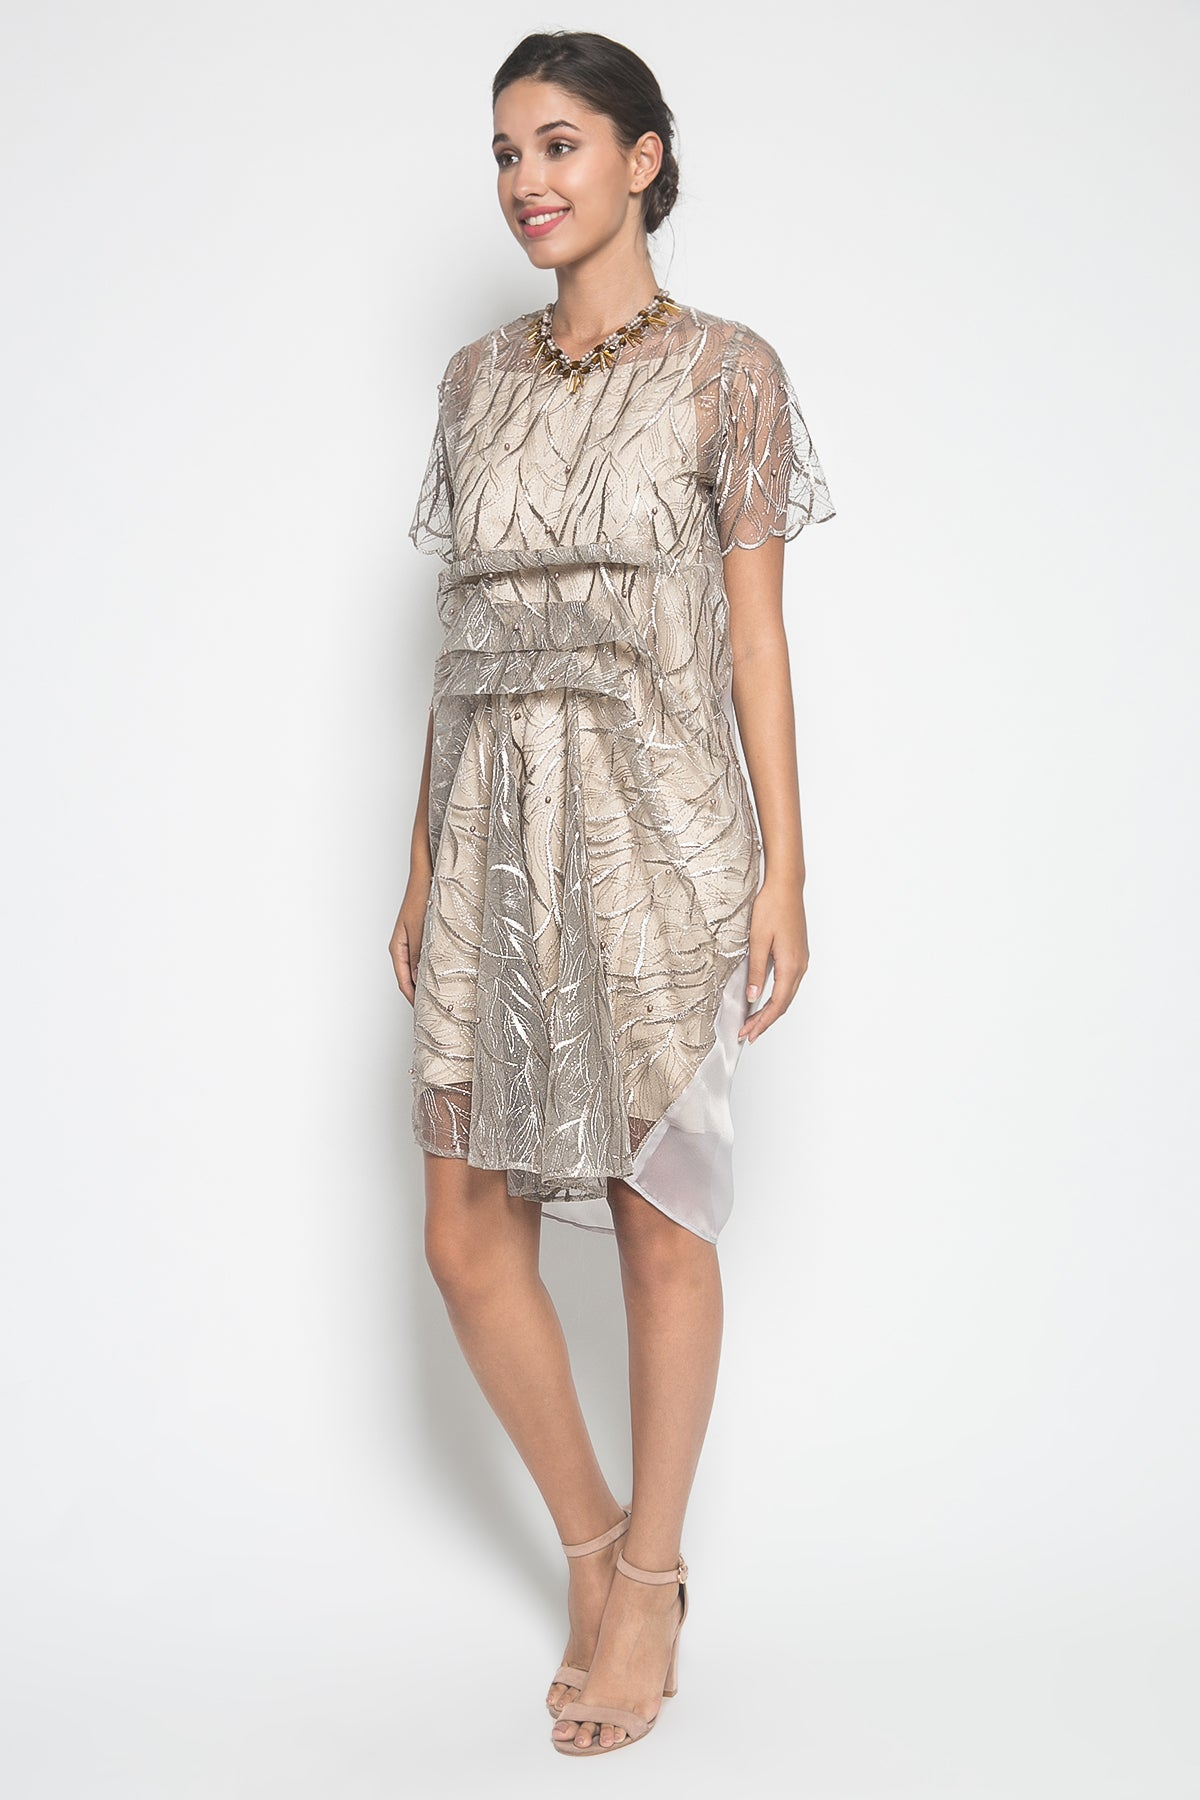 PUAN Karla Dress in Gray